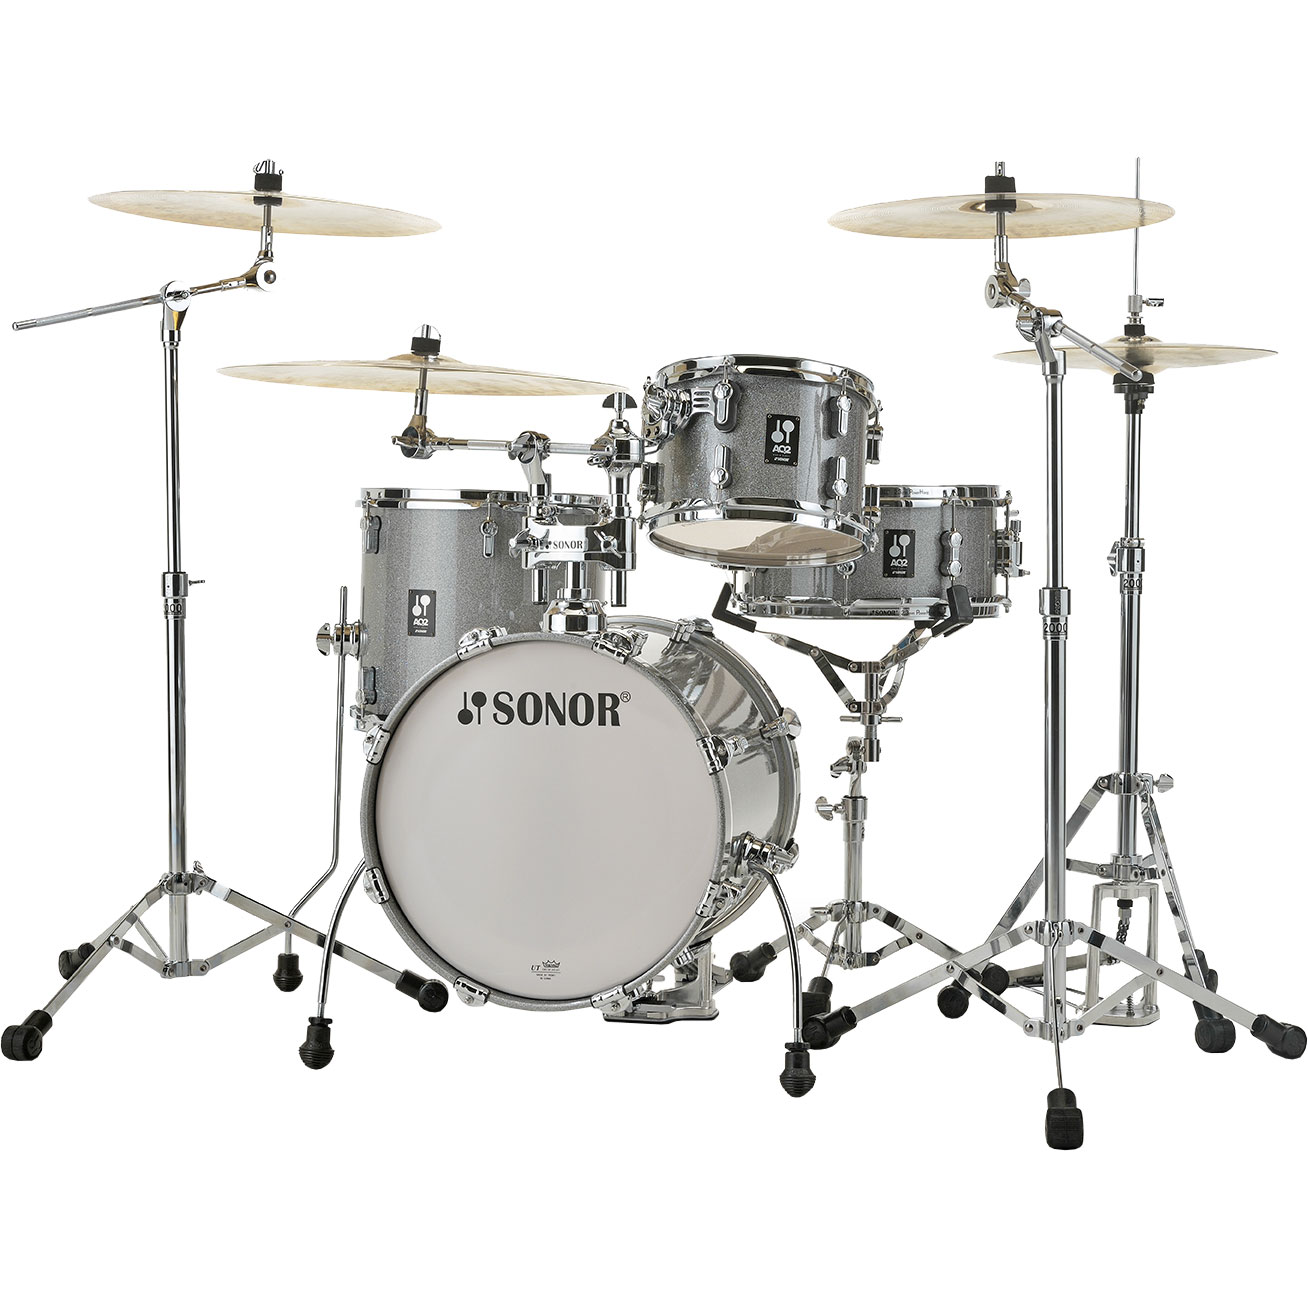 "Sonor AQ2 Bop 4-Piece Drum Set Shell Pack (18"" Bass, 12/14"" Toms, 14"" Snare)"